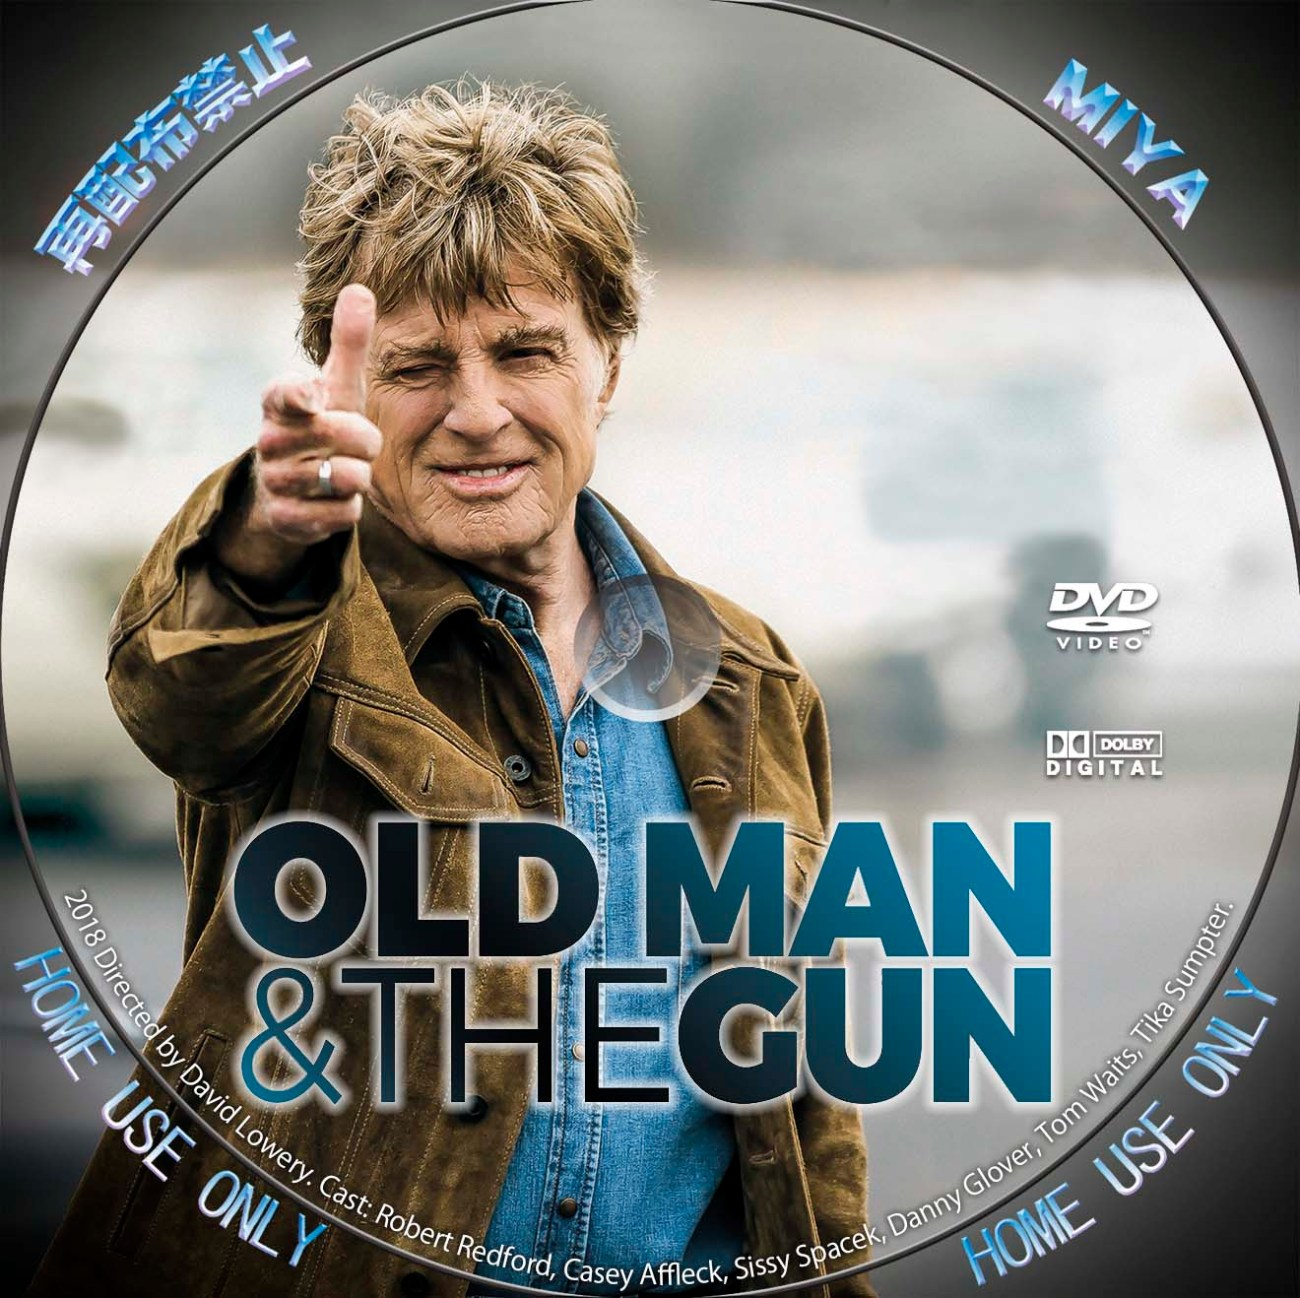 The Old Man & the Gun Dvd Label